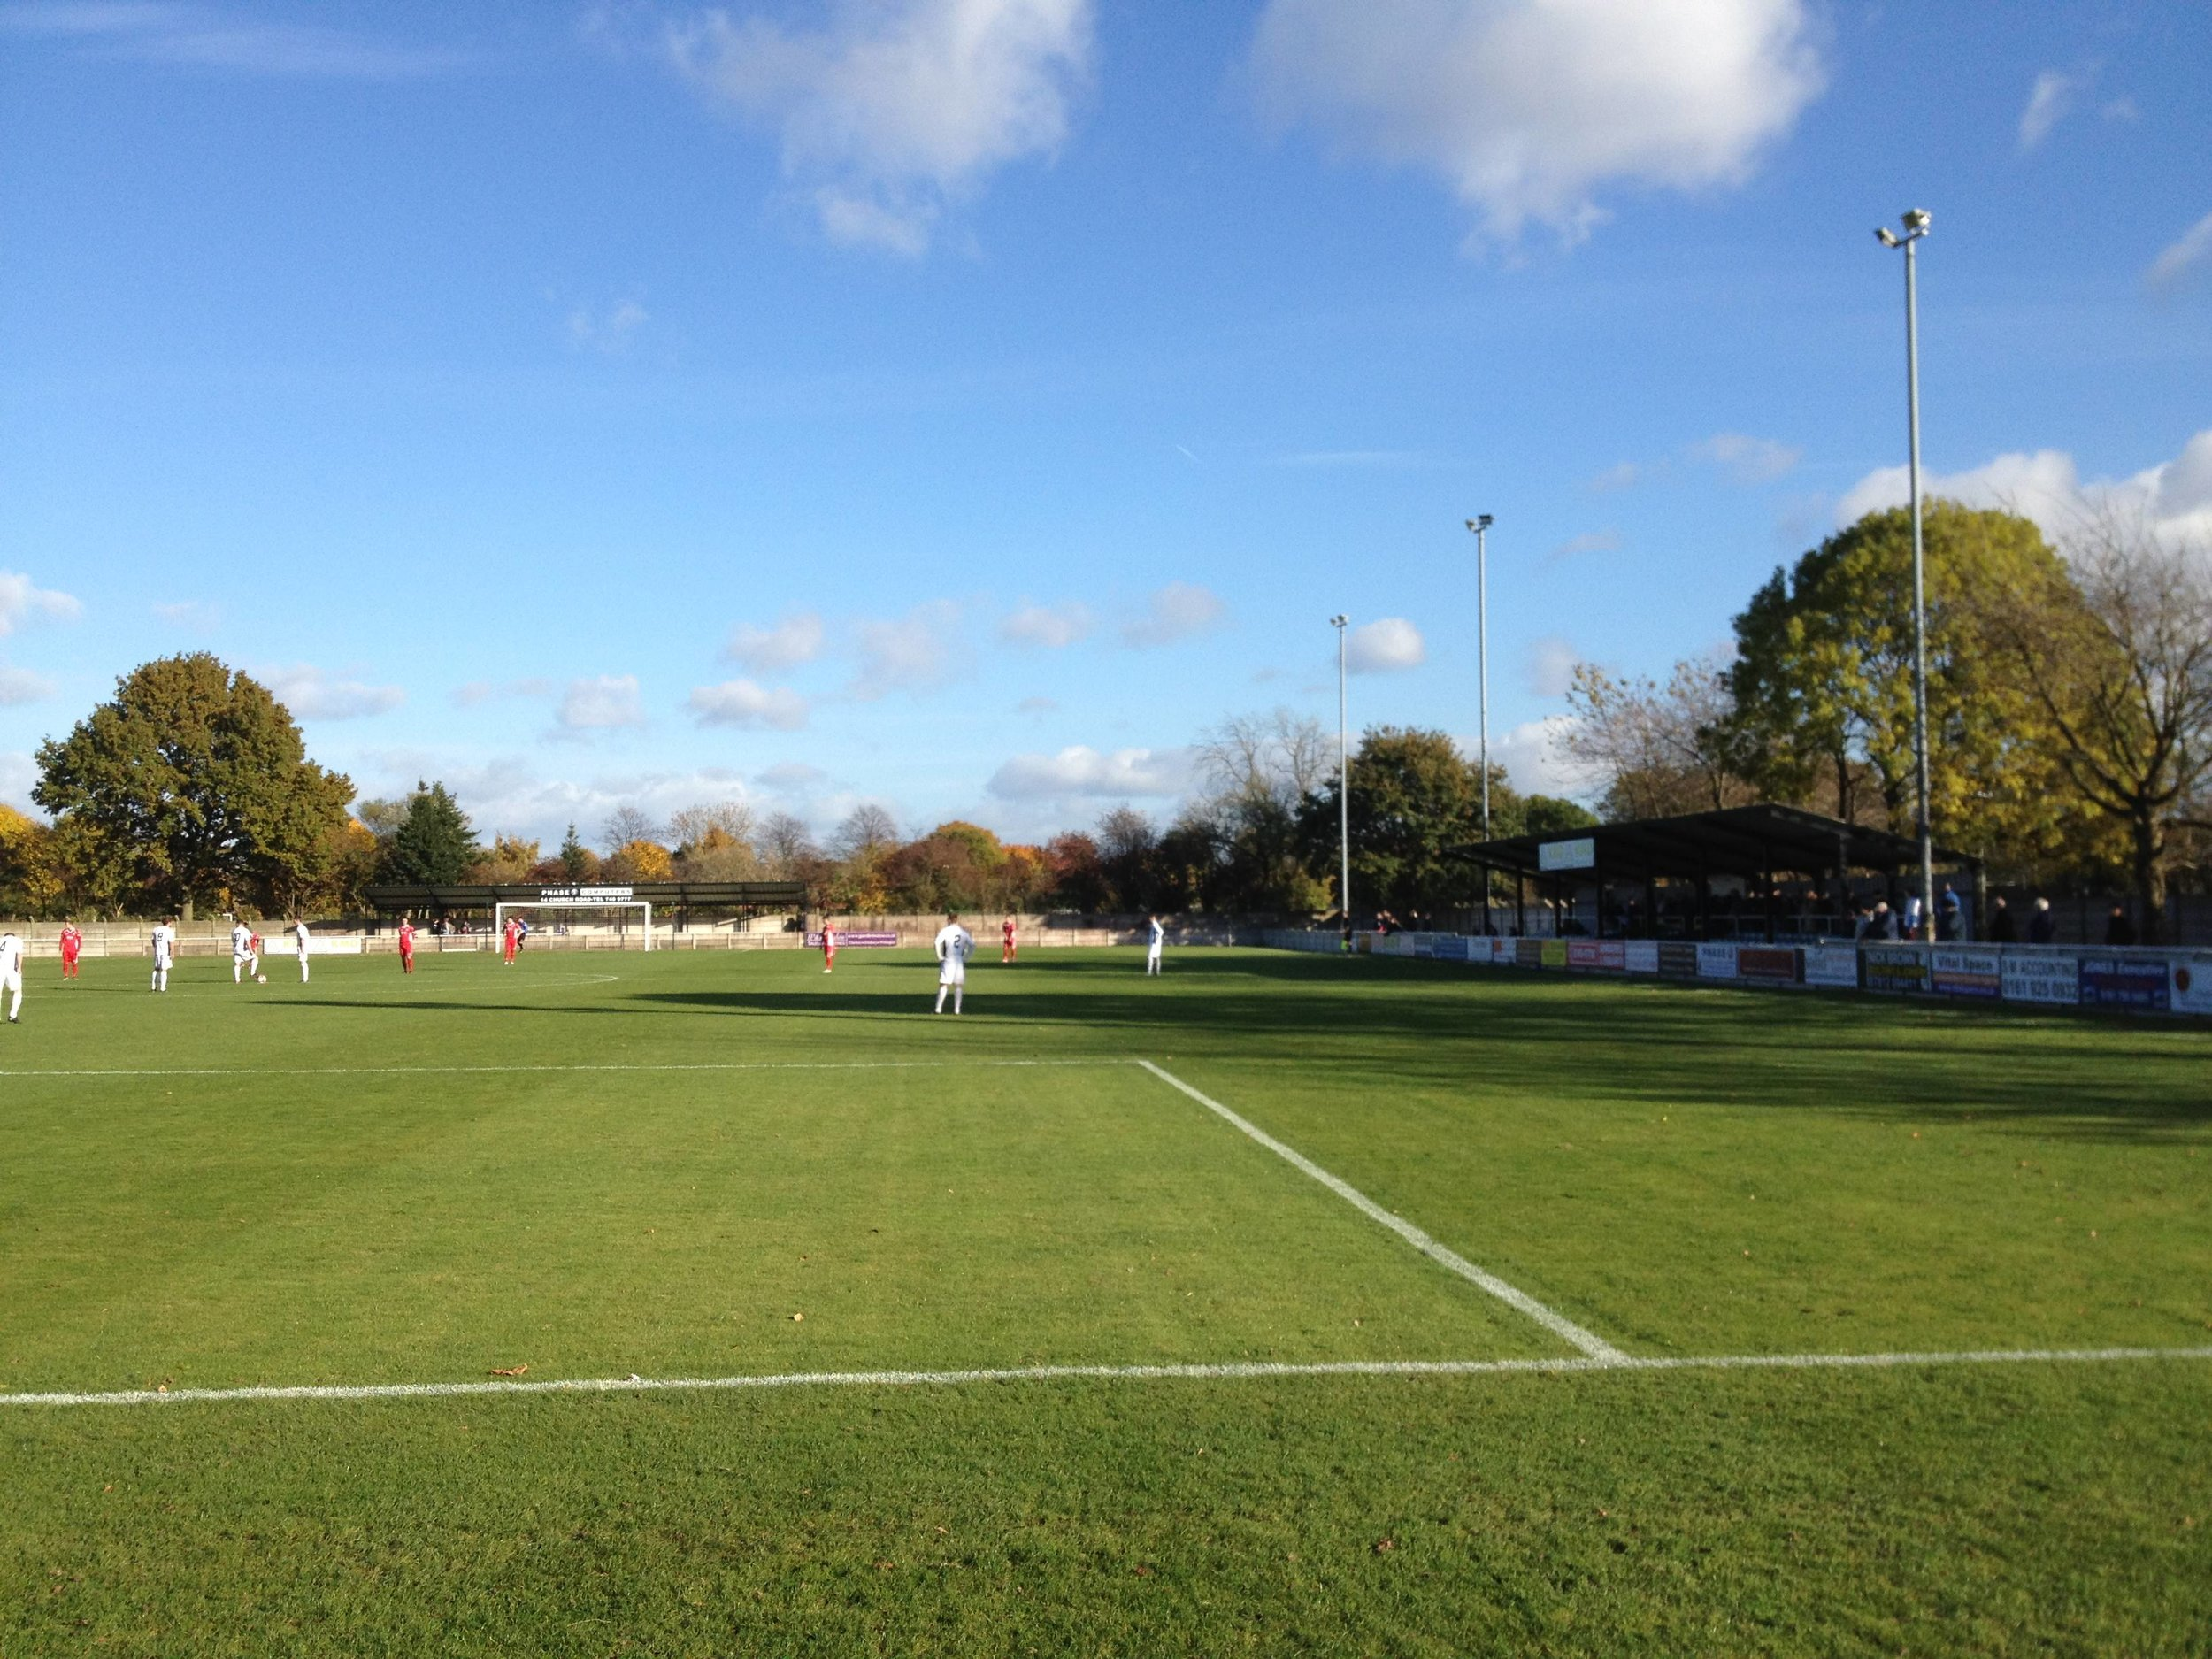 Shawe View - one of the Northern Premier League's better grounds (image: Wikimedia Commons)